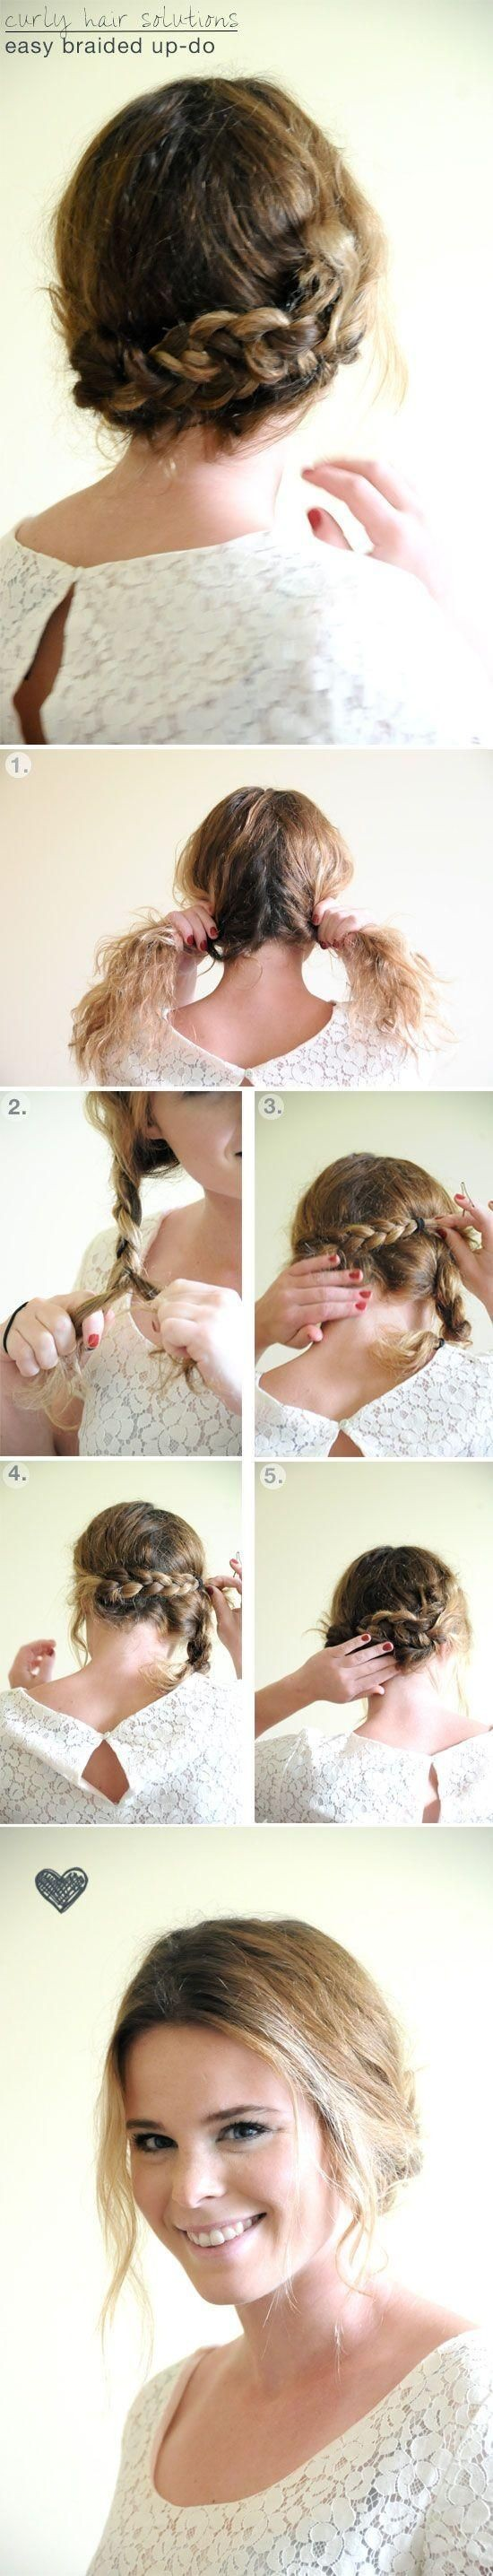 Simple Braided Updo Hairstyles Tutorial: Updos for Medium Hair/ Via